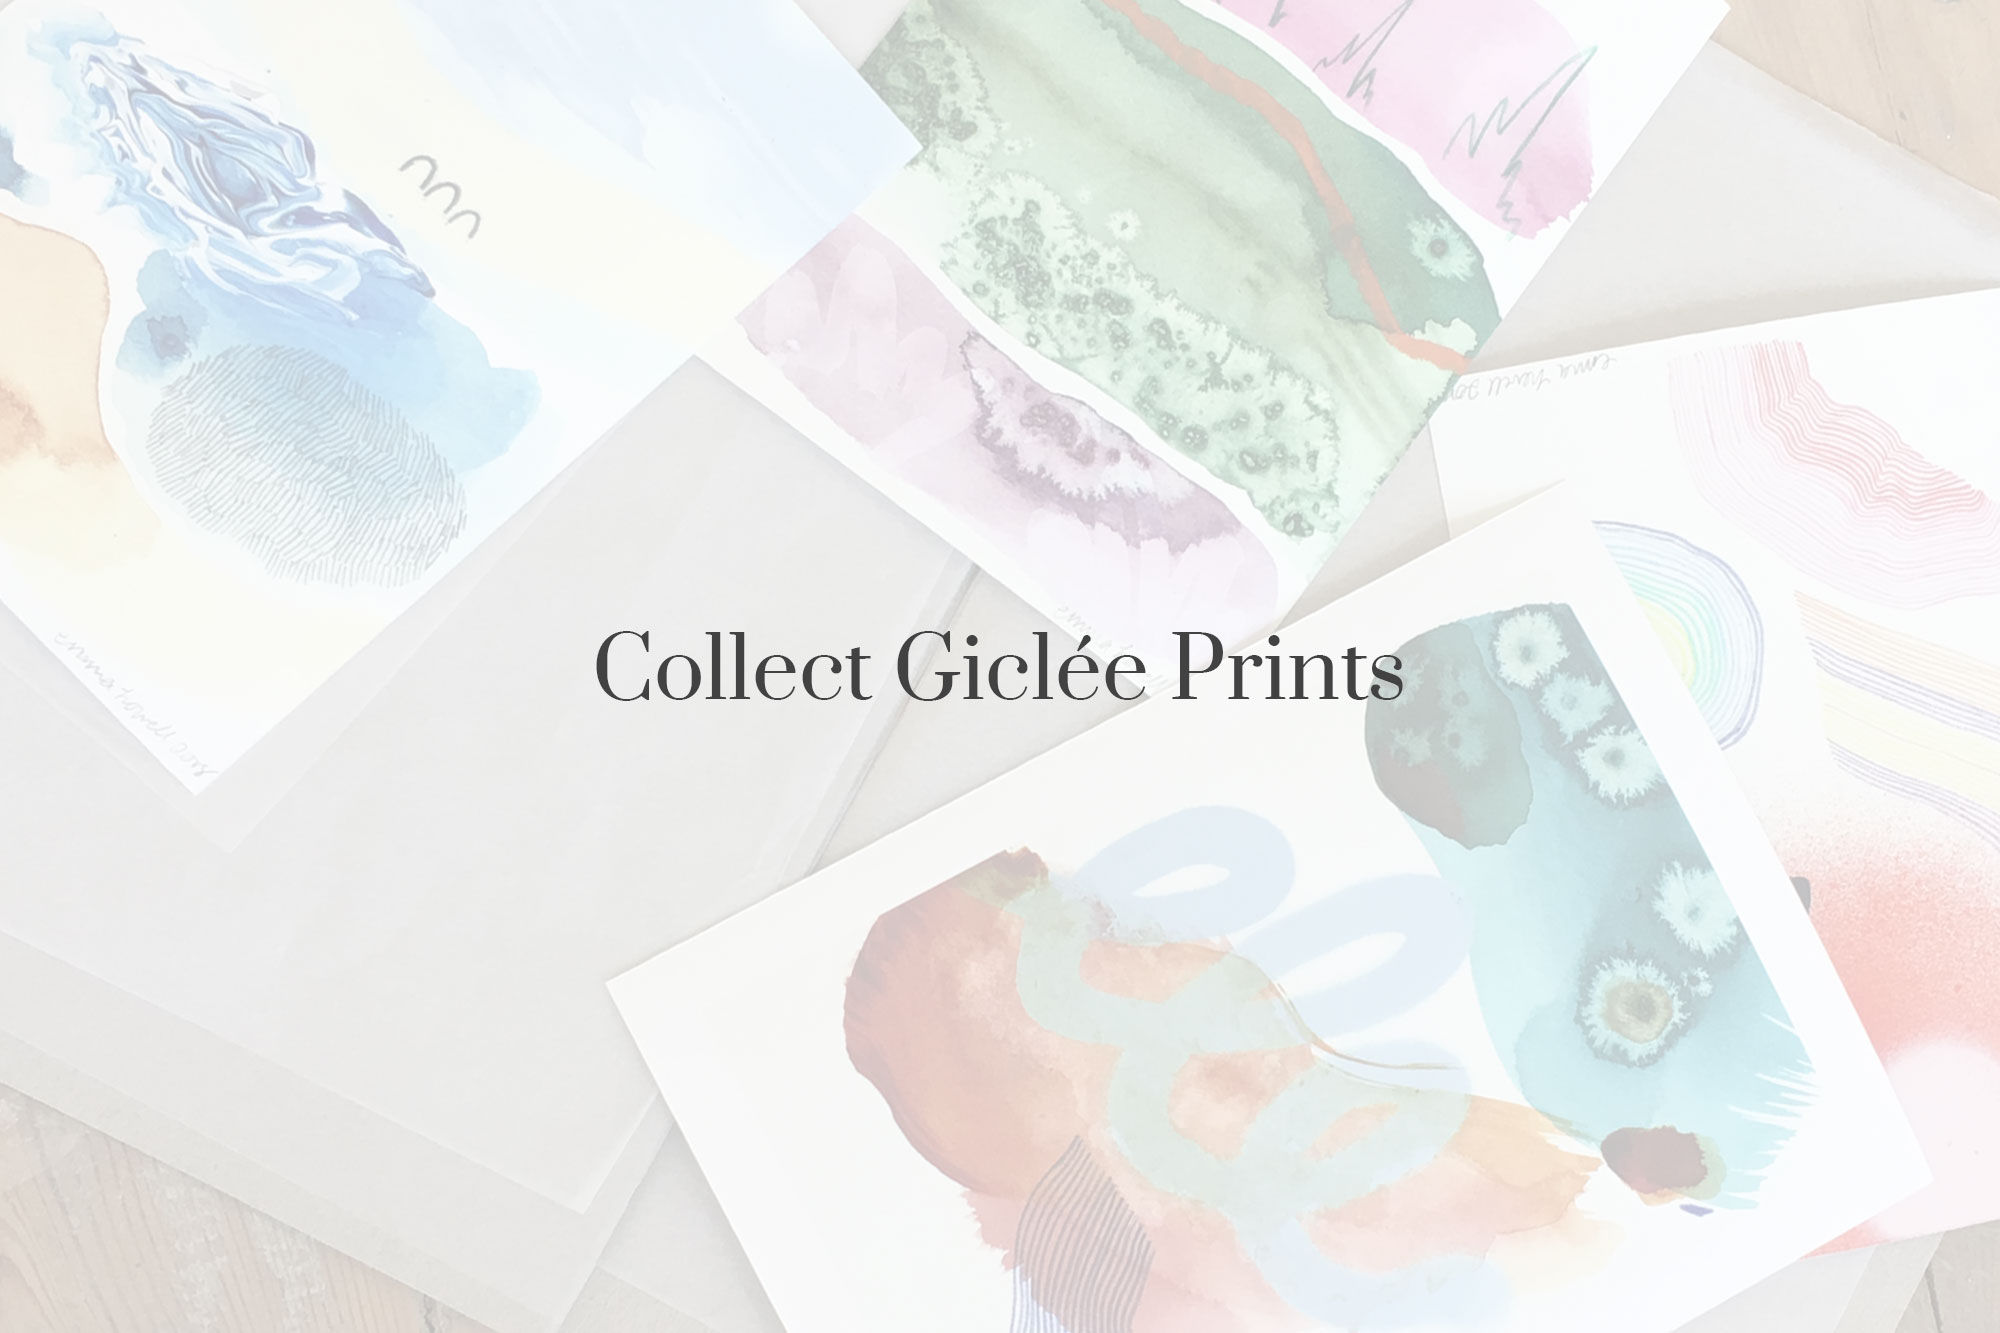 Collect Giclee Prints